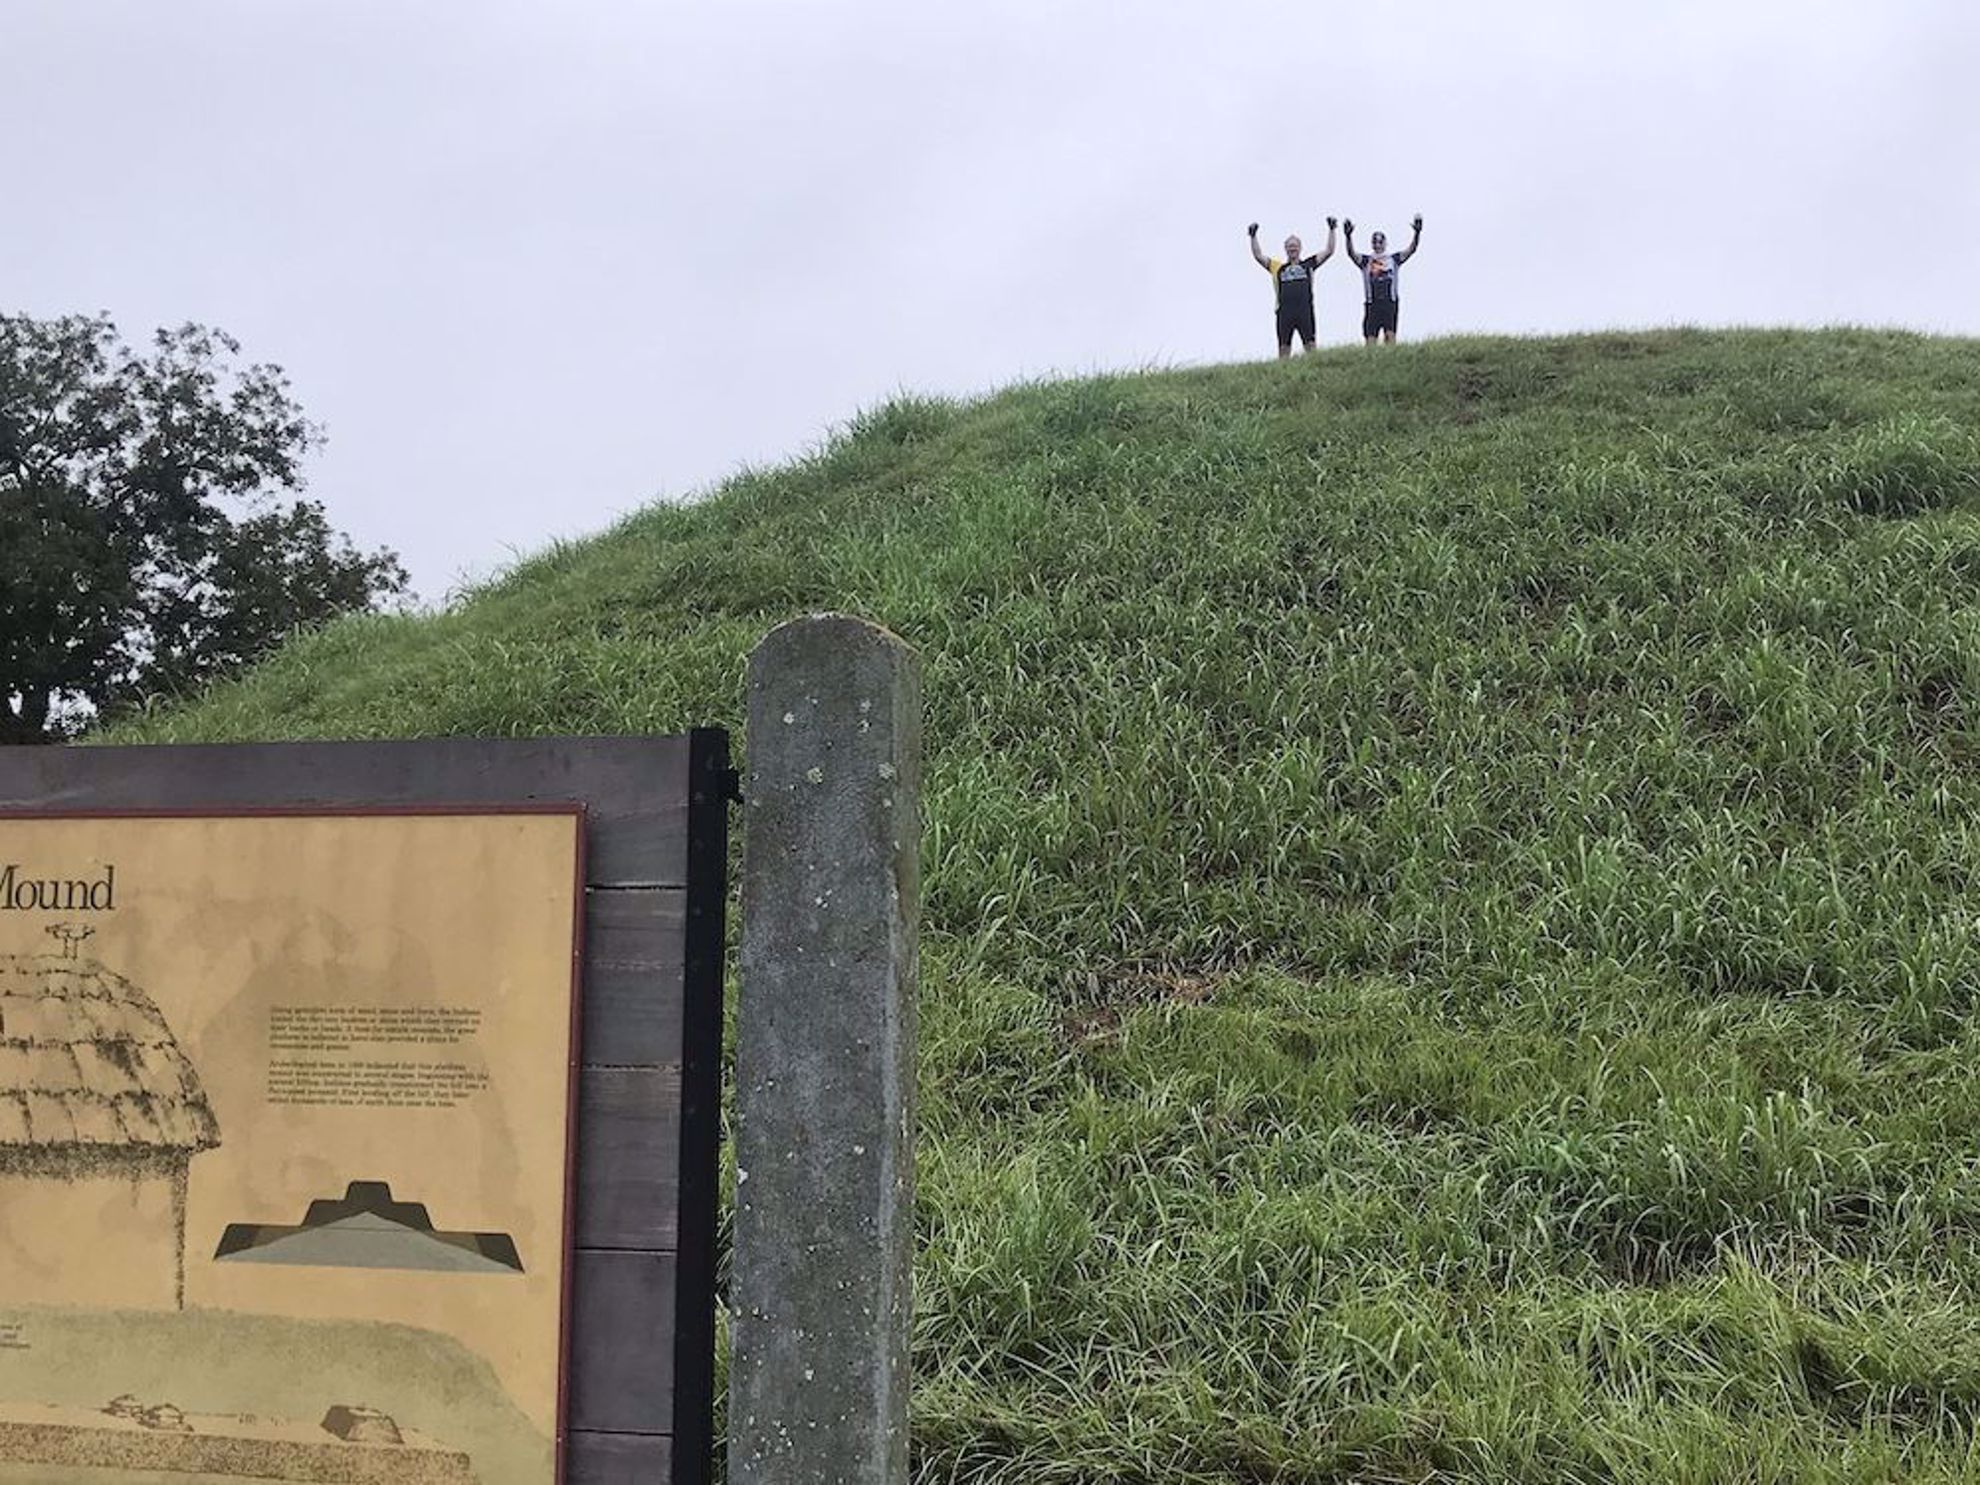 Riders on top of the Indian mound